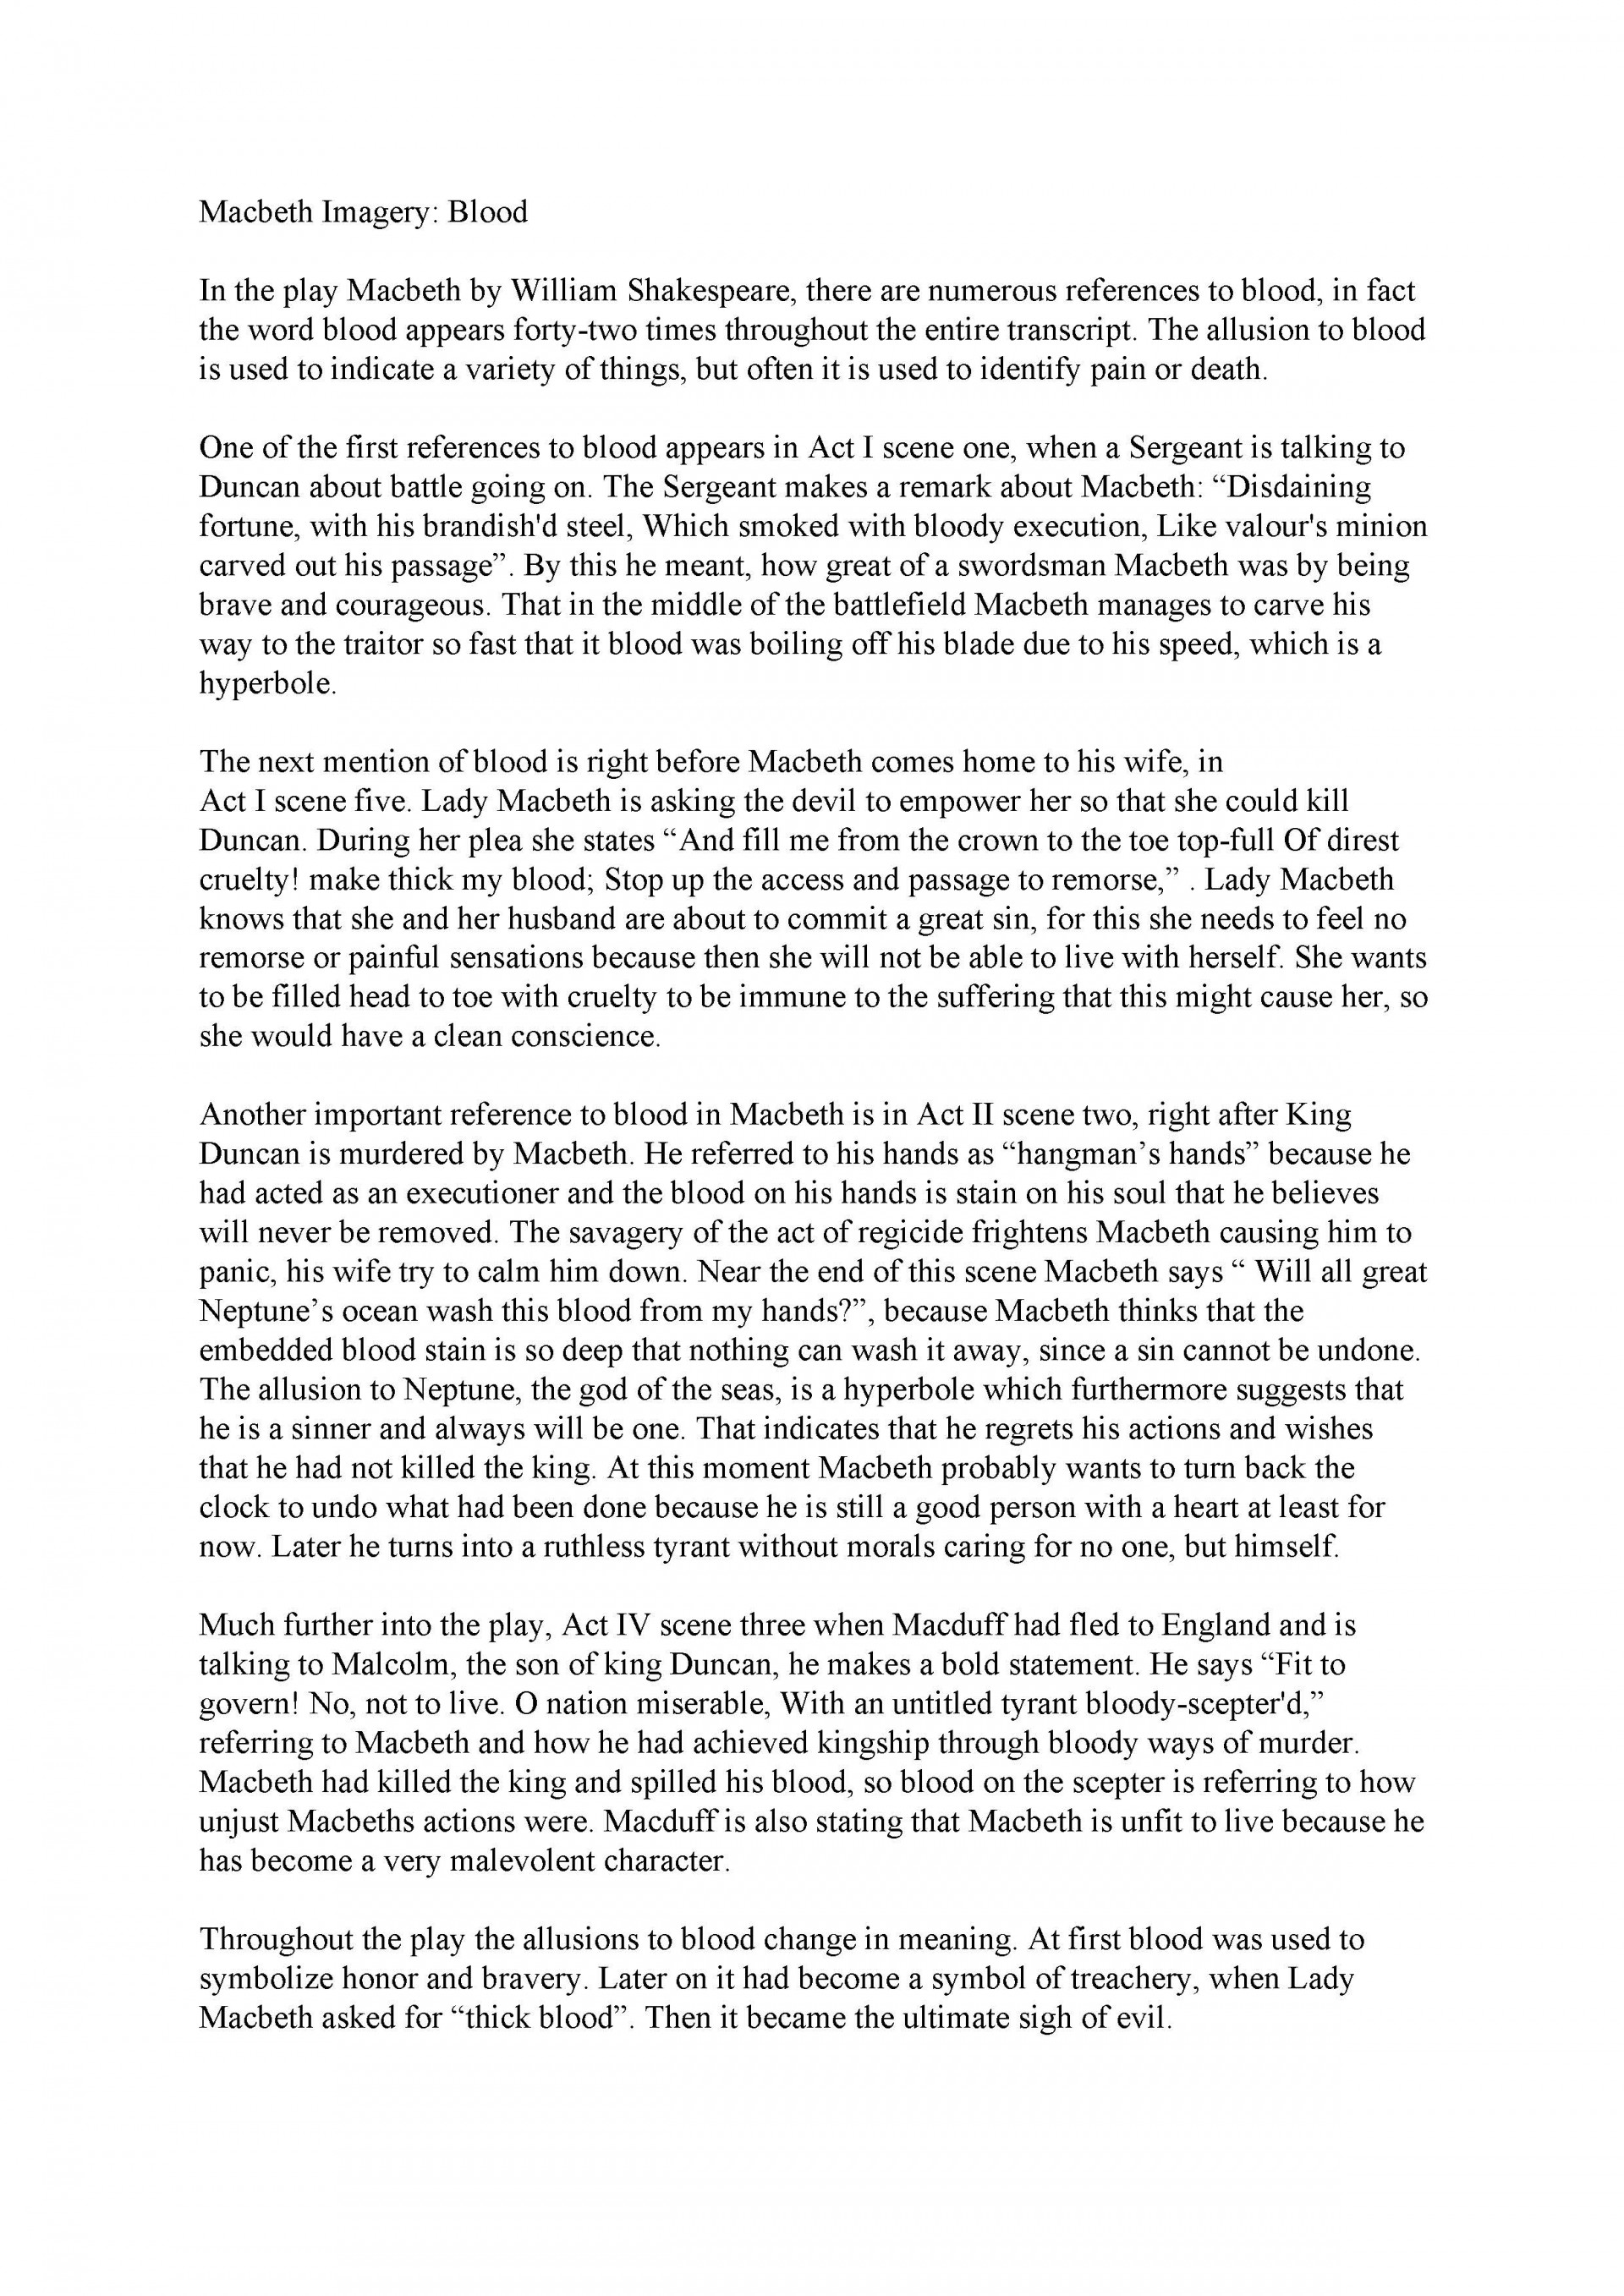 017 Macbeth Essay Sample How To Essays Excellent Write An Expository For 4th Grade Make Longer With Words Start Introduction 1920